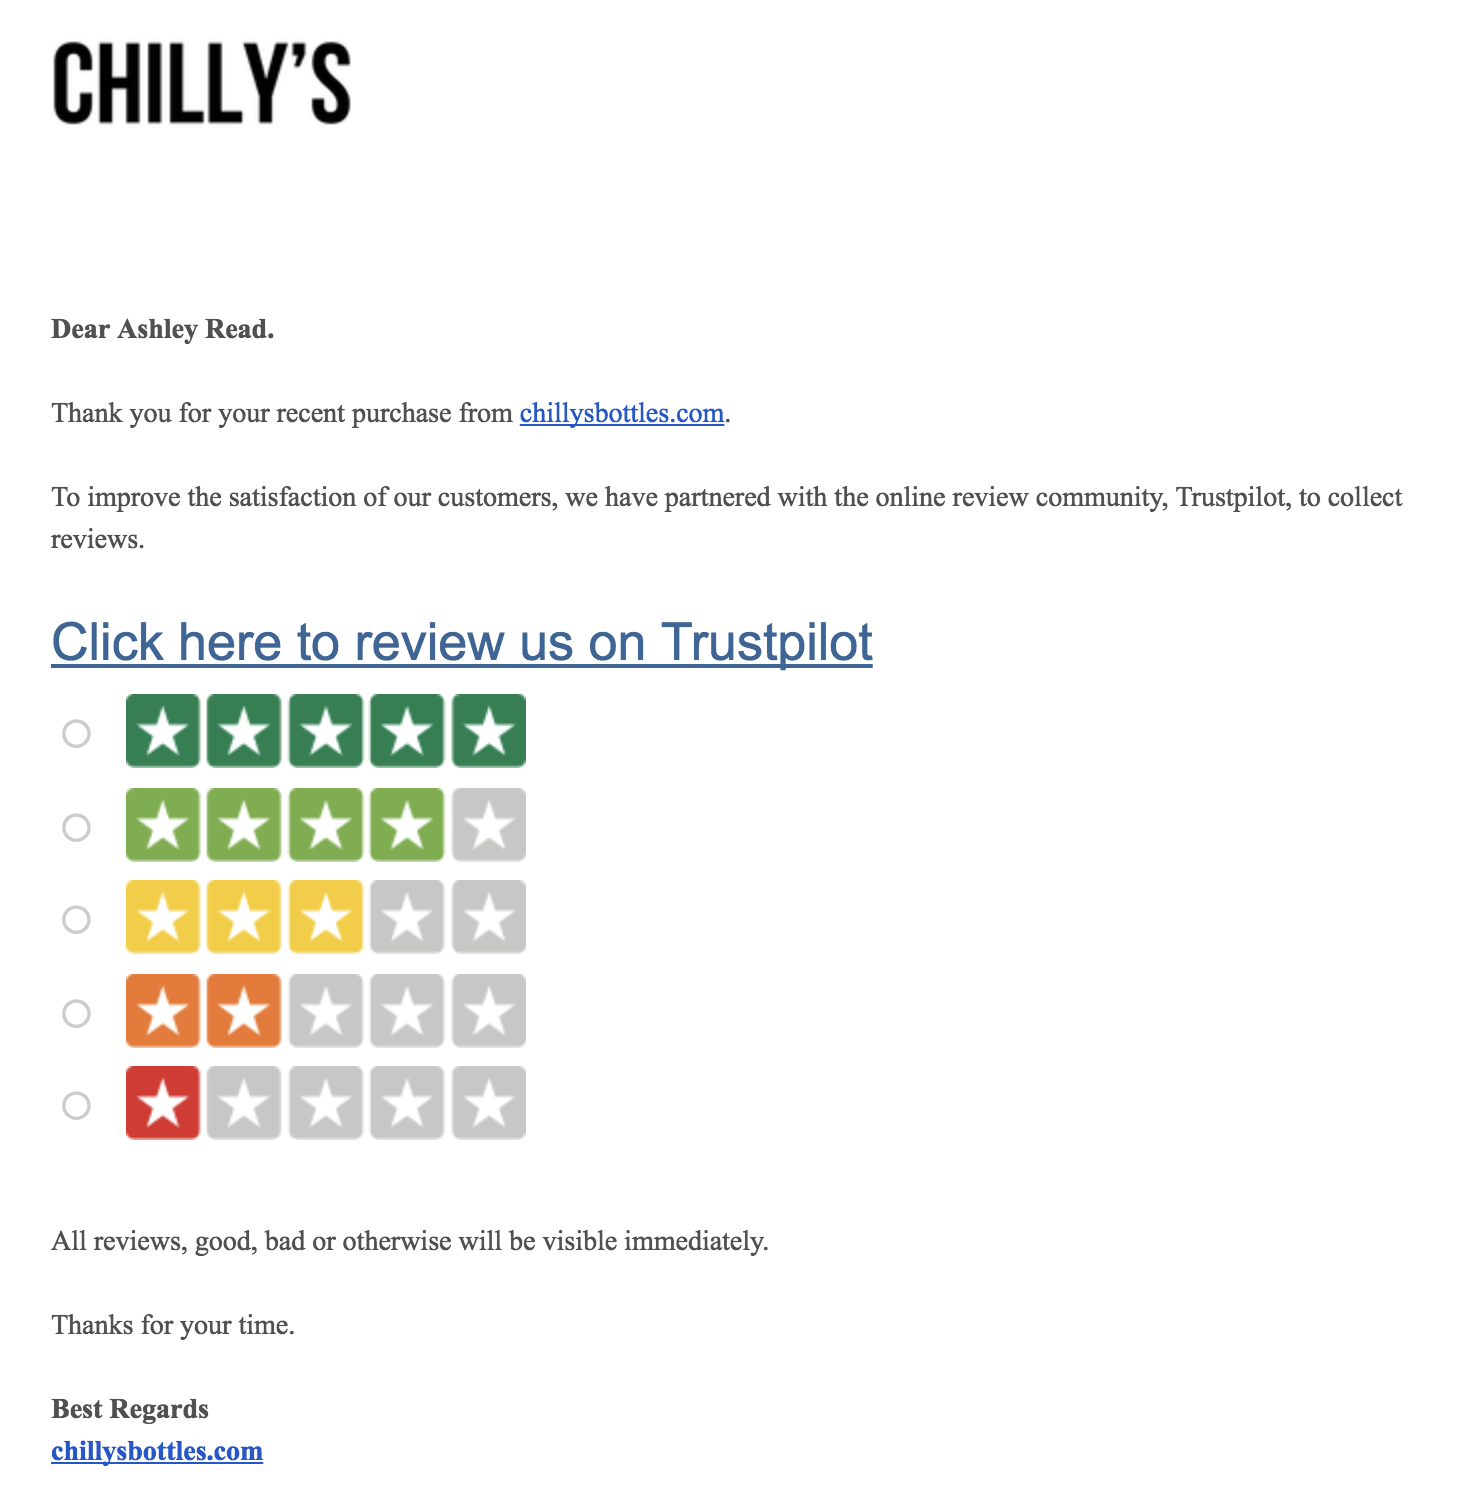 Screenshot showing a review page by Chilly